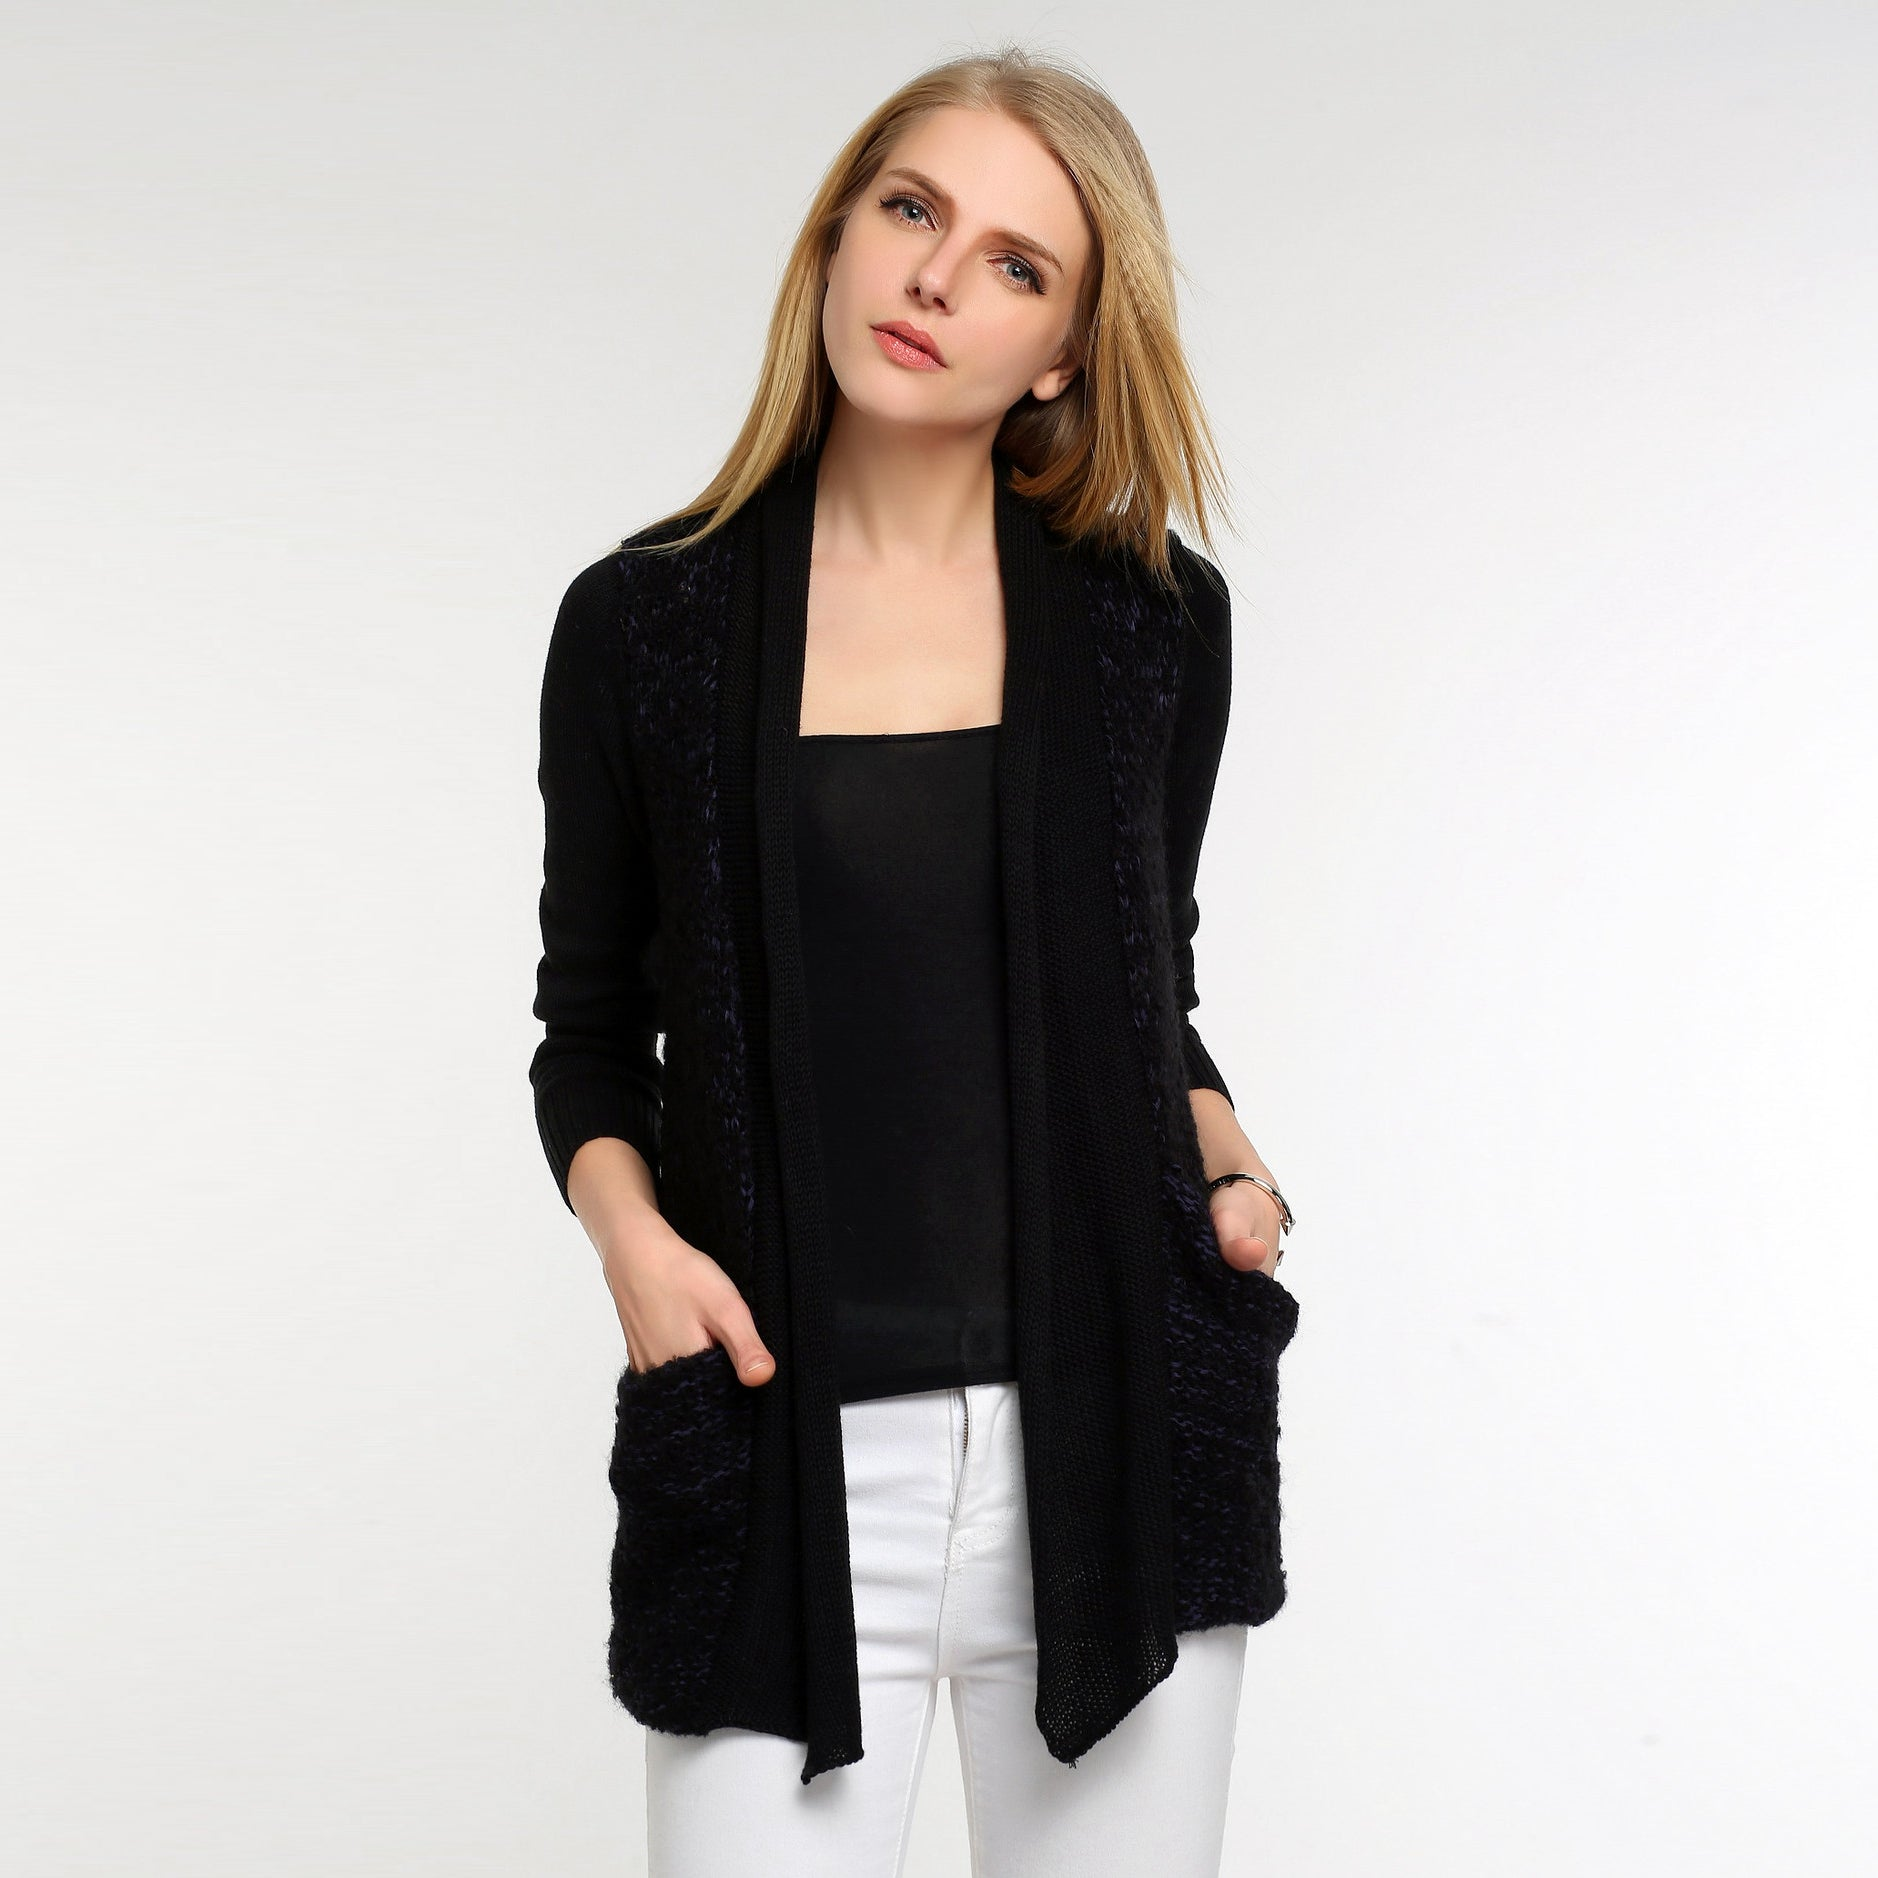 Knit-Cardigan-Sweater-Online-Shopping-Singapore